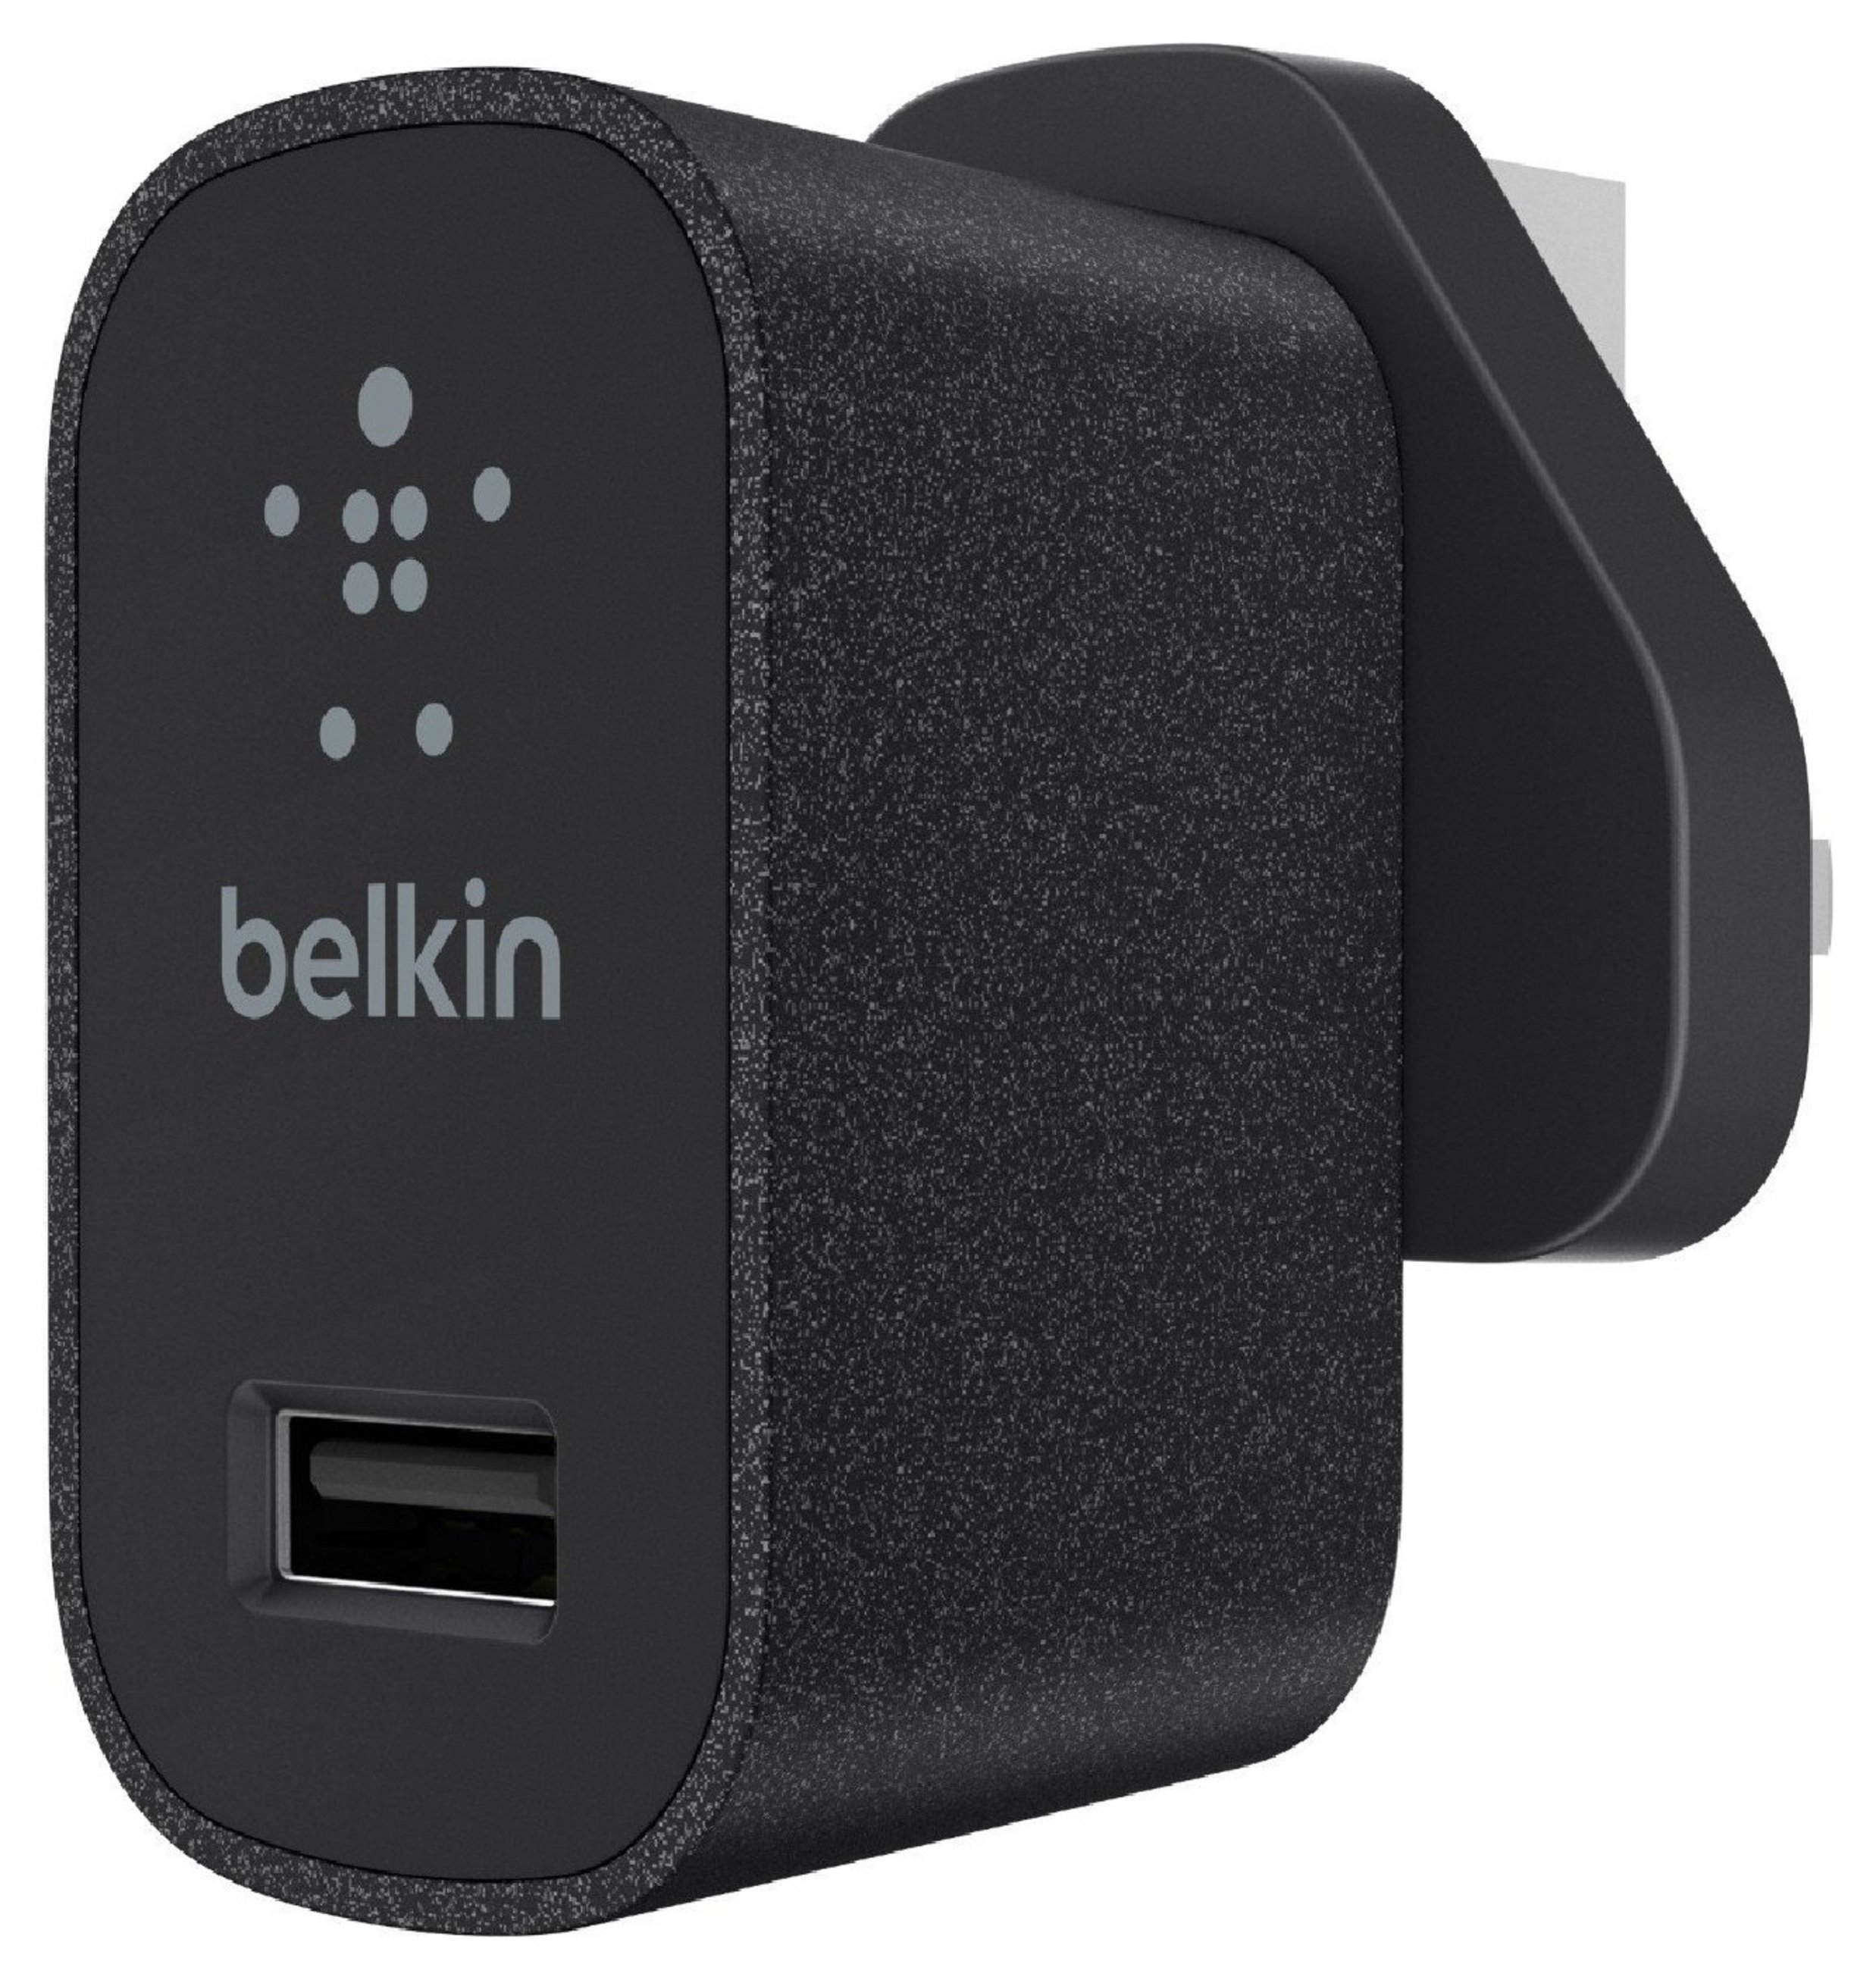 Image of Belkin Mixit Metalic Wall Charger - Black